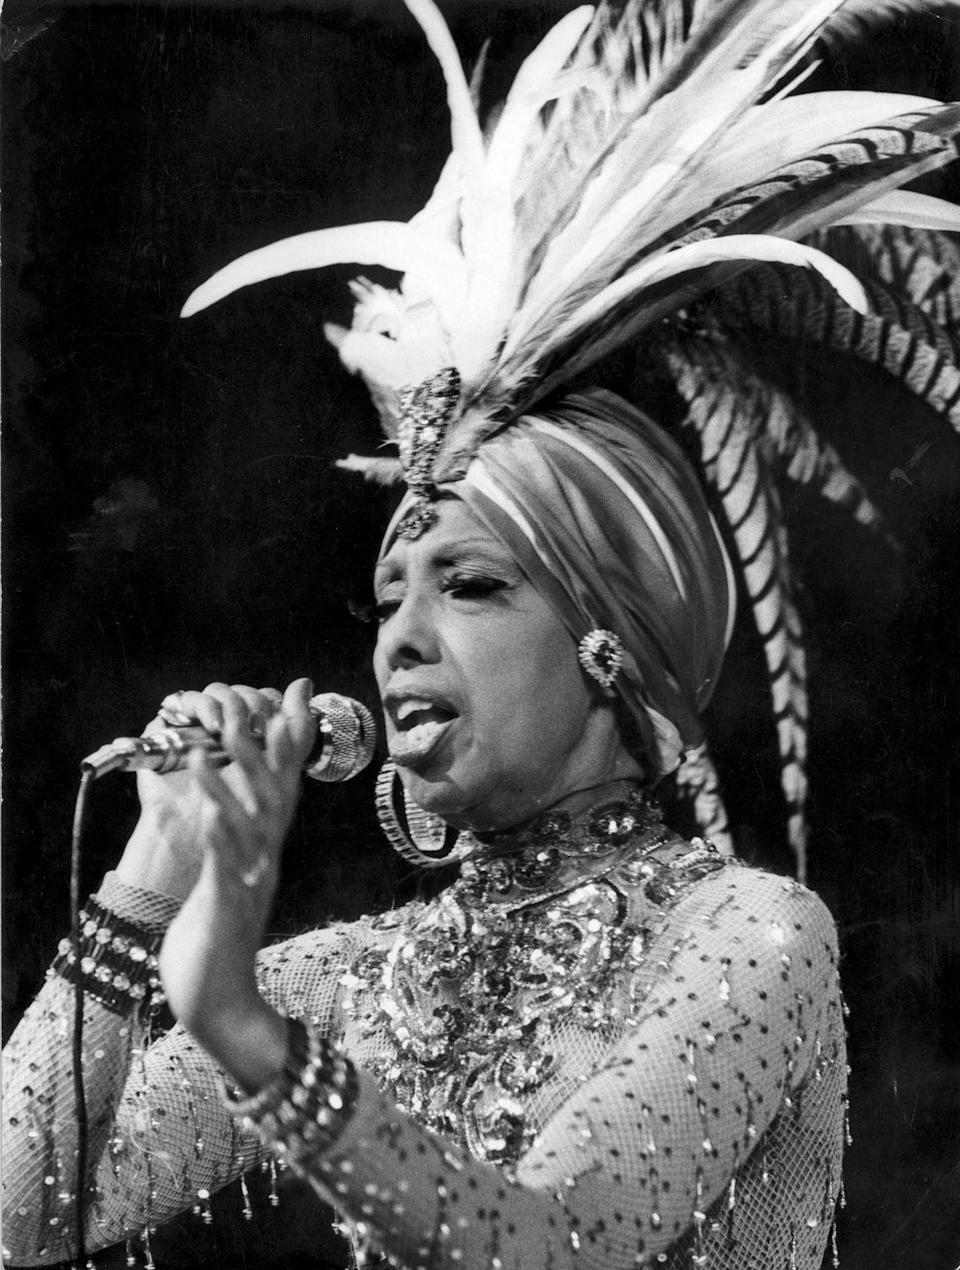 <p>Baker, who was recognized by the NAACP for her work for civil rights advancement, was one of the only female speakers in Washington, D.C. for the March on Washington for Jobs and Freedom. She performs here in yet another stunning turban and gem-spangled costume. </p>